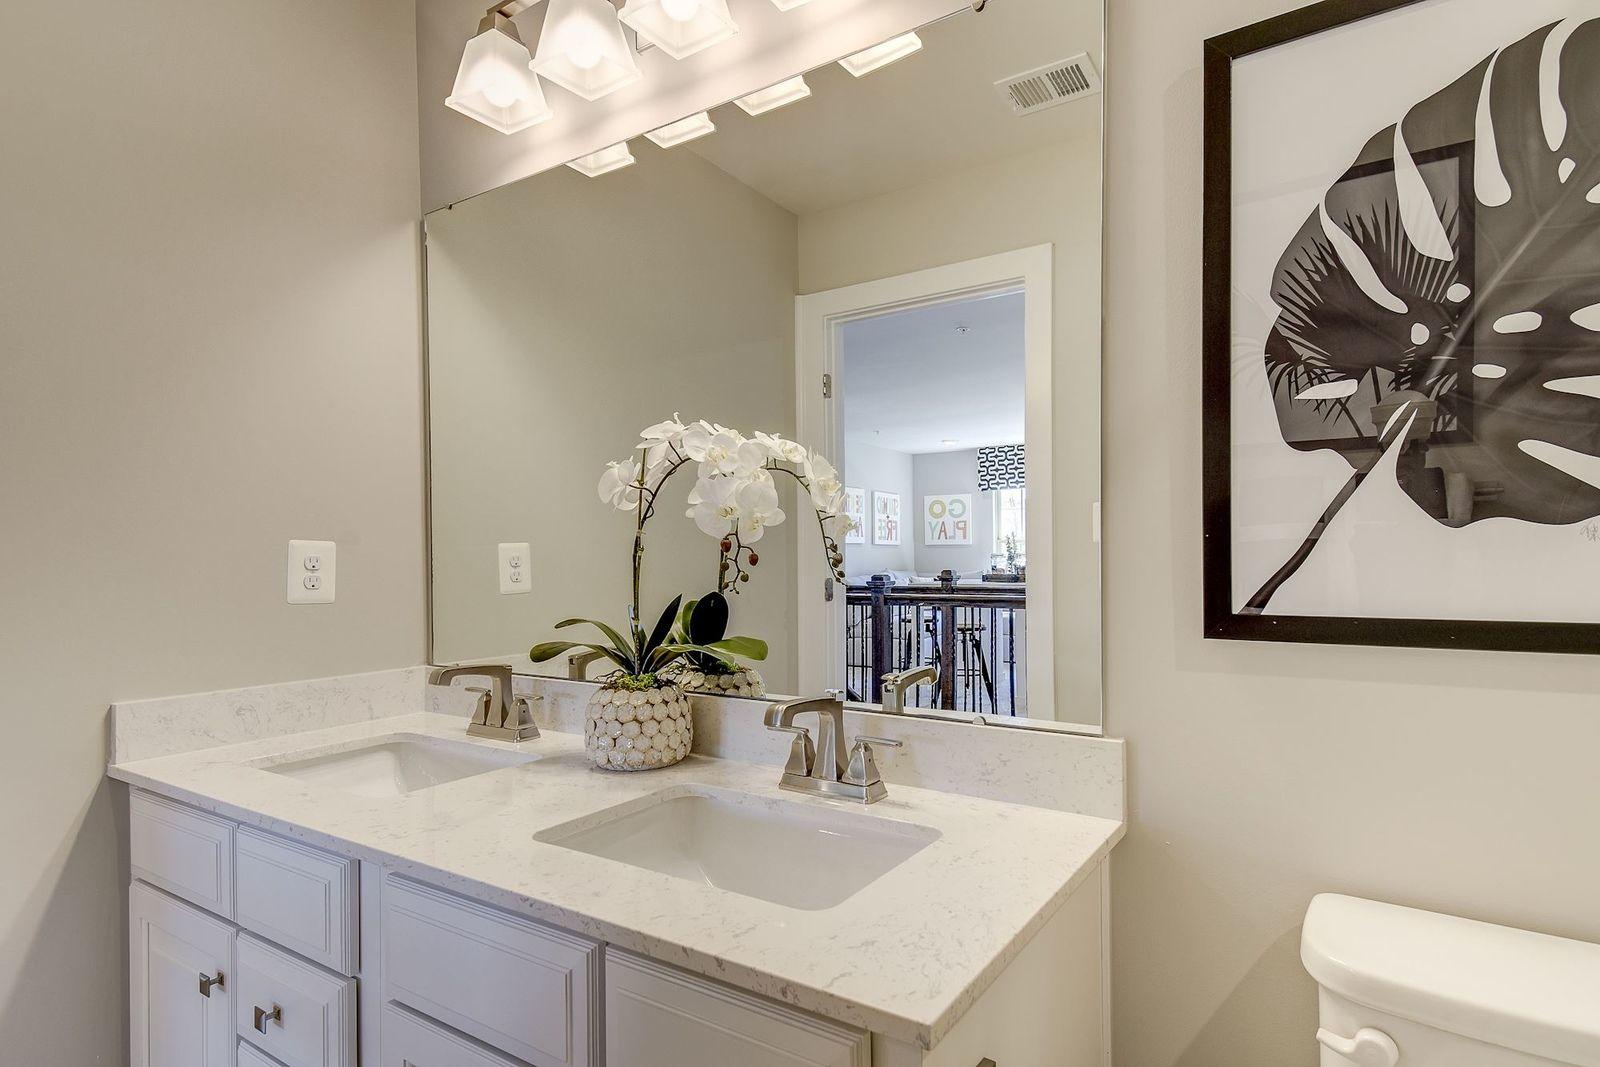 Bathroom featured in the Corsica By Ryan Homes in Washington, MD